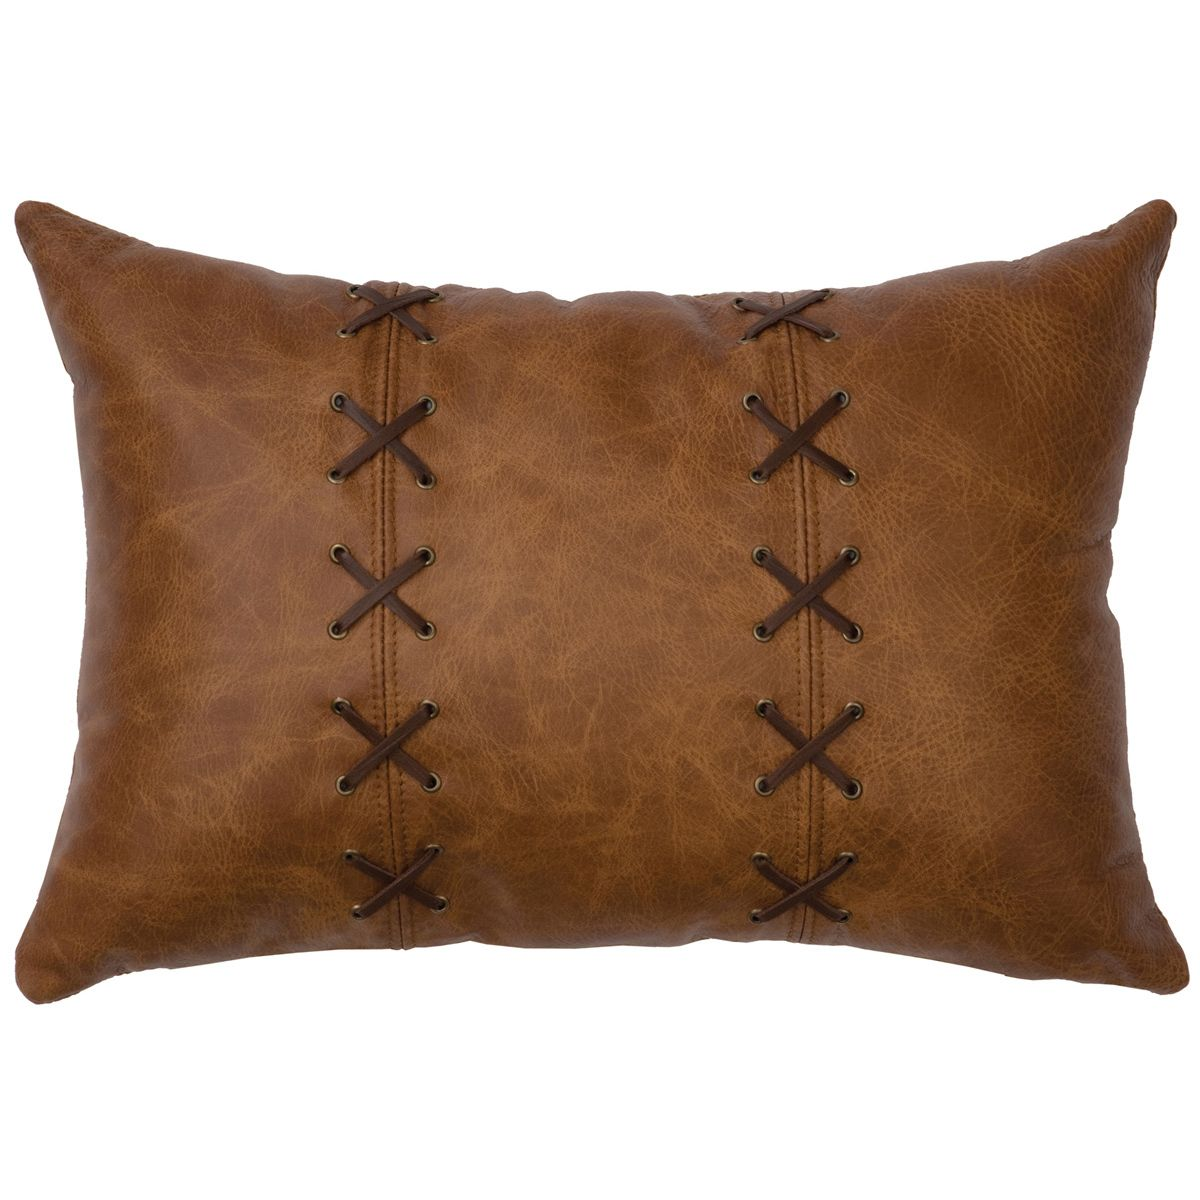 Whiskey Leather & Deerskin Lacing Pillow - Leather Back